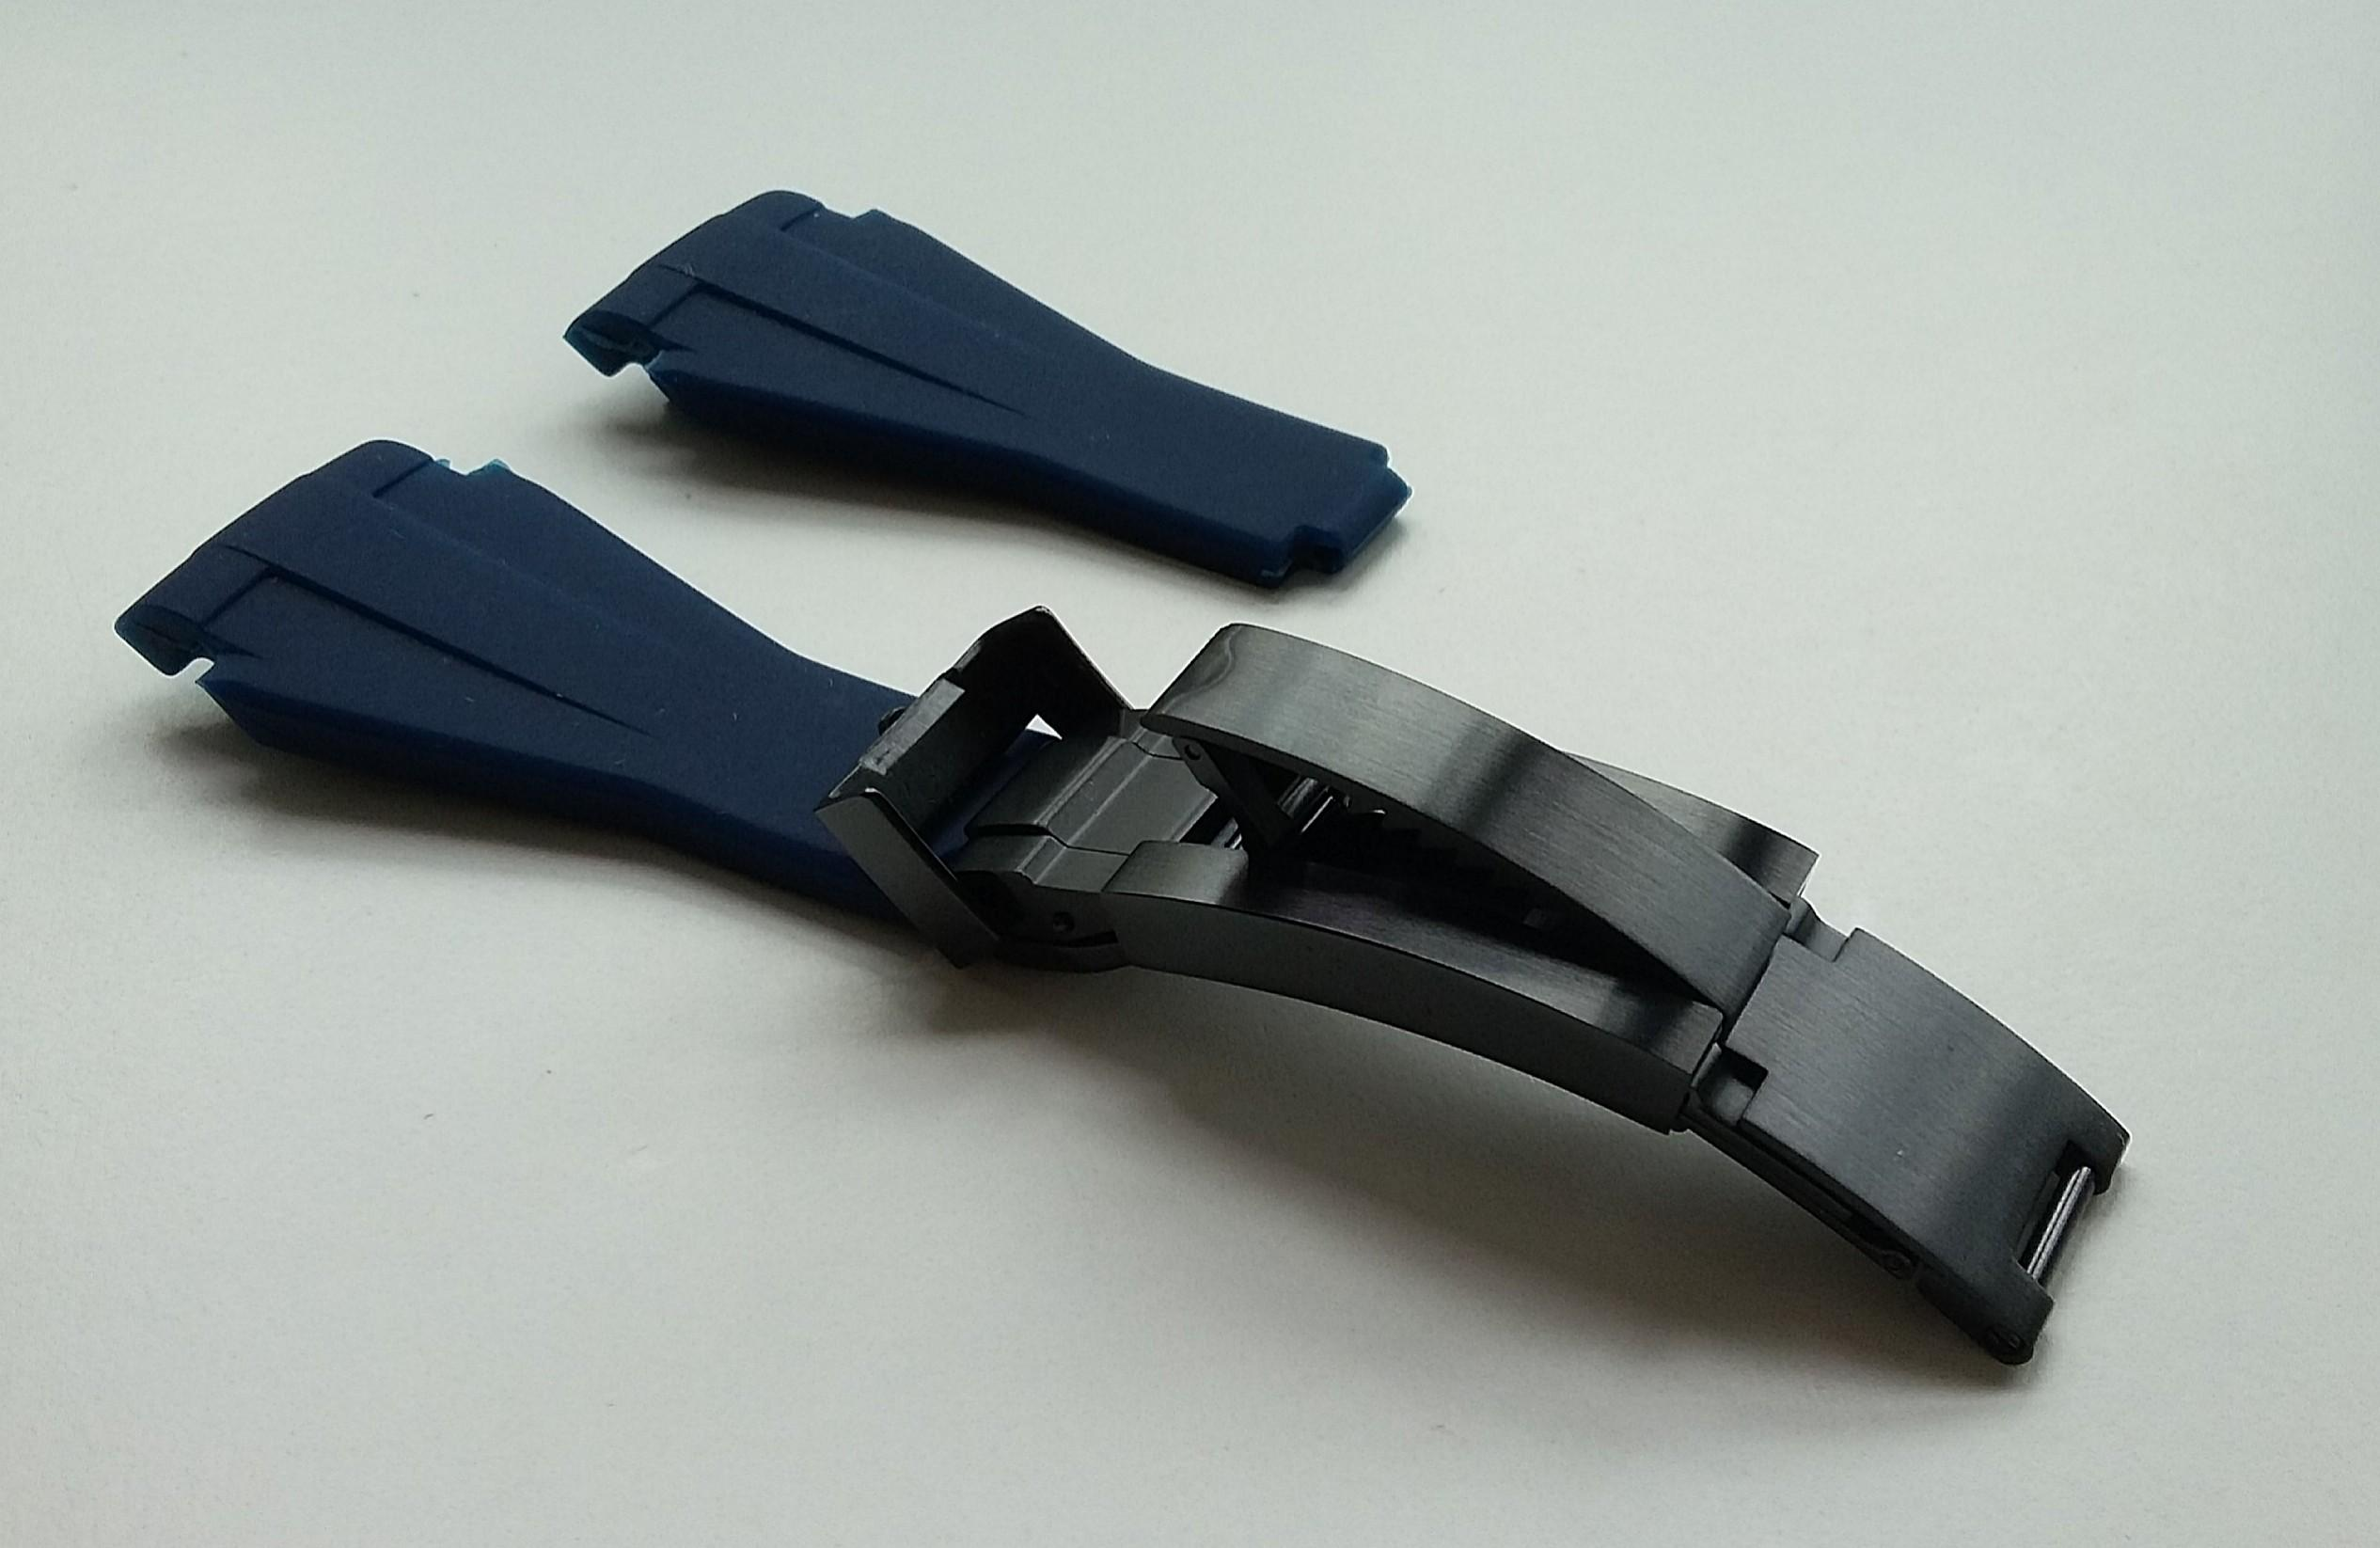 21mm NAVY BLUE VULCANISED RUBBER WITH PVD MATT BLACK STEEL GUIDELOCK CLASP FOR ROLEX DEEPSEA DWELLER (PRICE INCLUDES FITMENT)